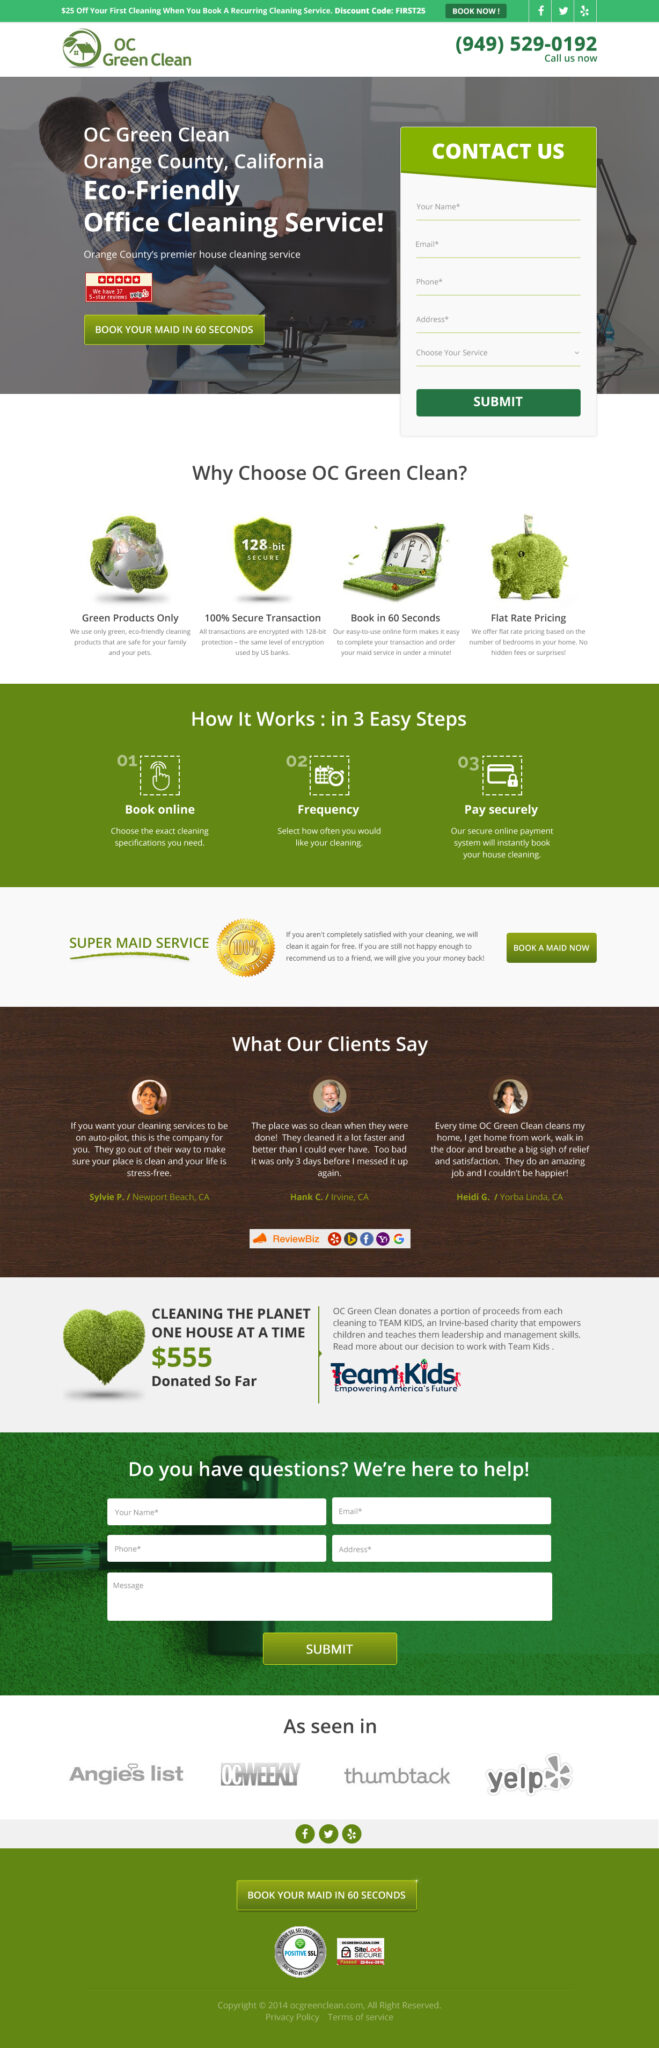 OC Green Clean Landing Page